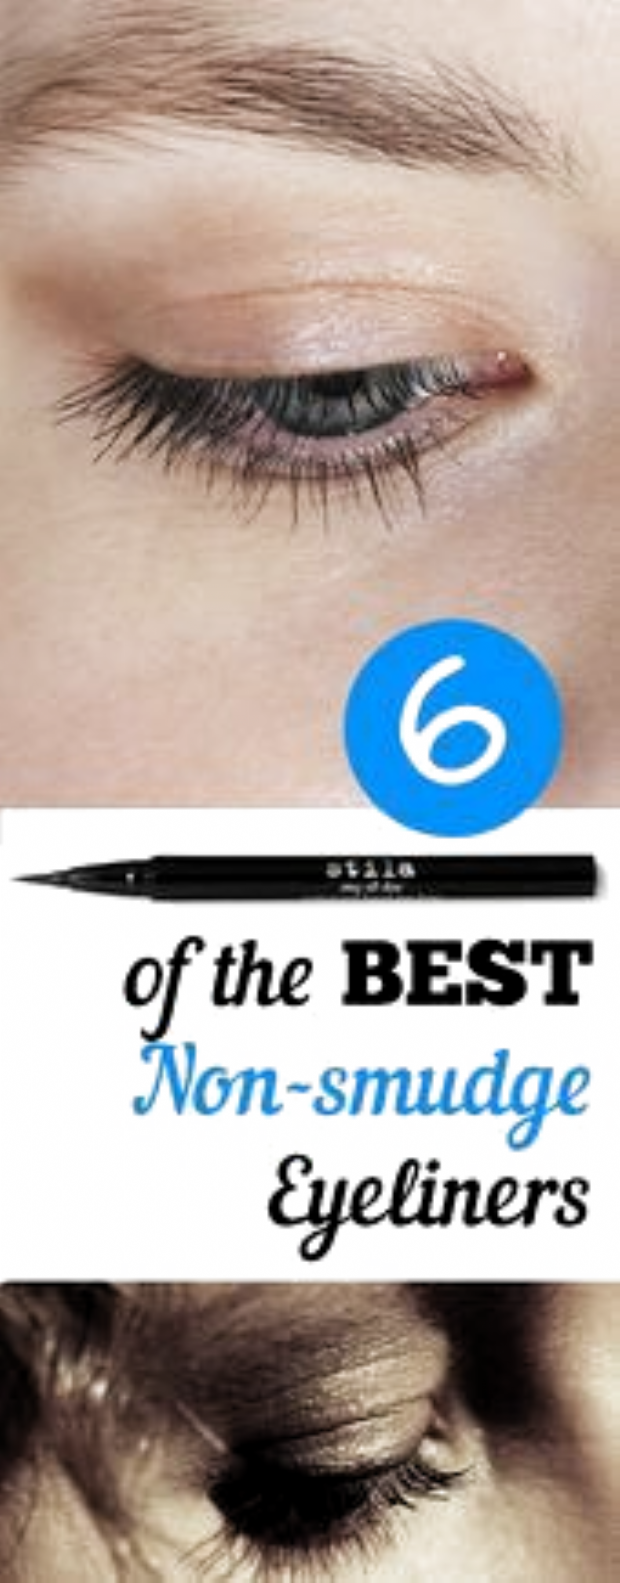 6 of the BEST Non-smudge Eyeliners. Natural, DIY, natural remedies, natural remedies, health and beauty, DIY makeup. #beauty hacks for teens #every girl should know #Eyeliner #hacks acne #hacks eyeliner #hacks for hair #hacks makeup #hacks skincare #NonSmudge #Options